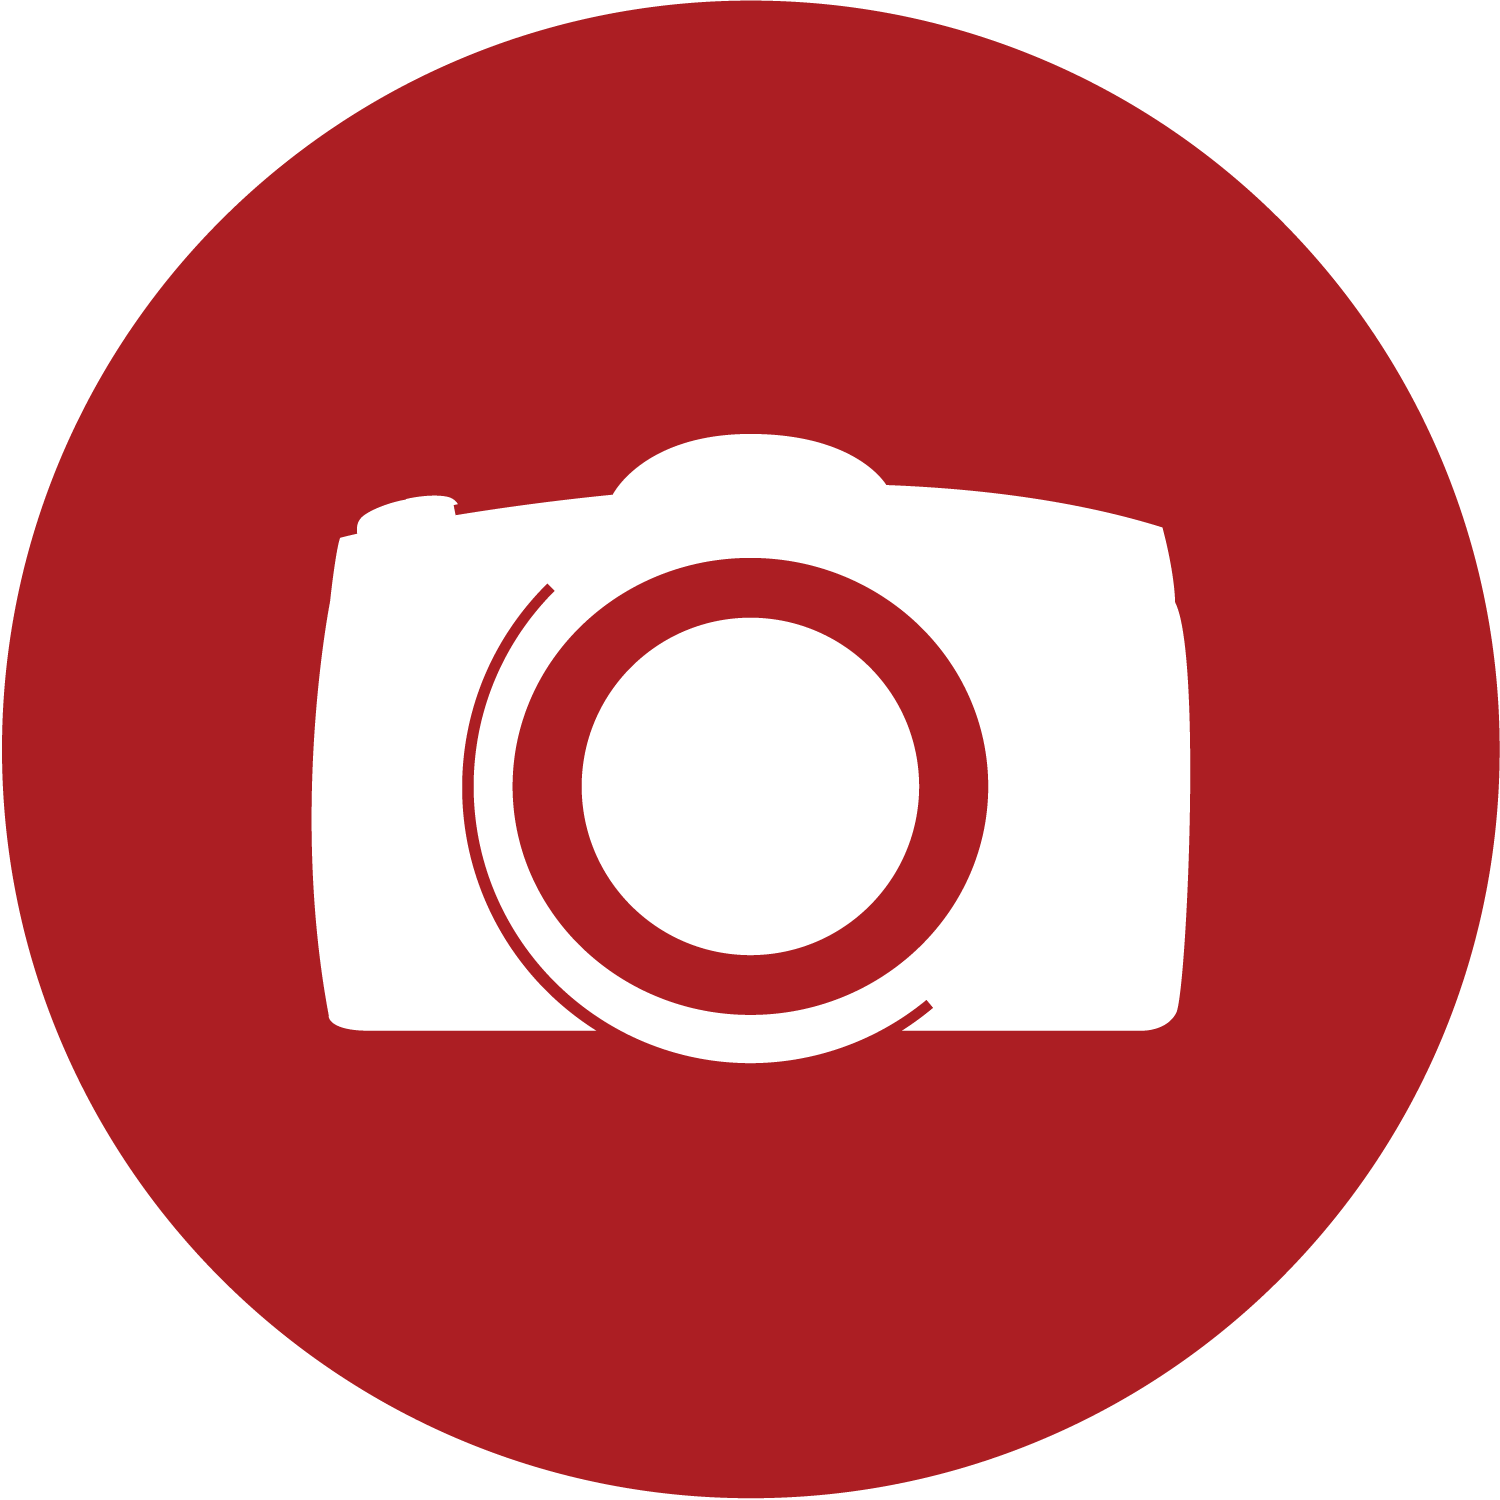 Camera Logo Png Lenovo snapit and seeit camera apk for android [free 1500x1500